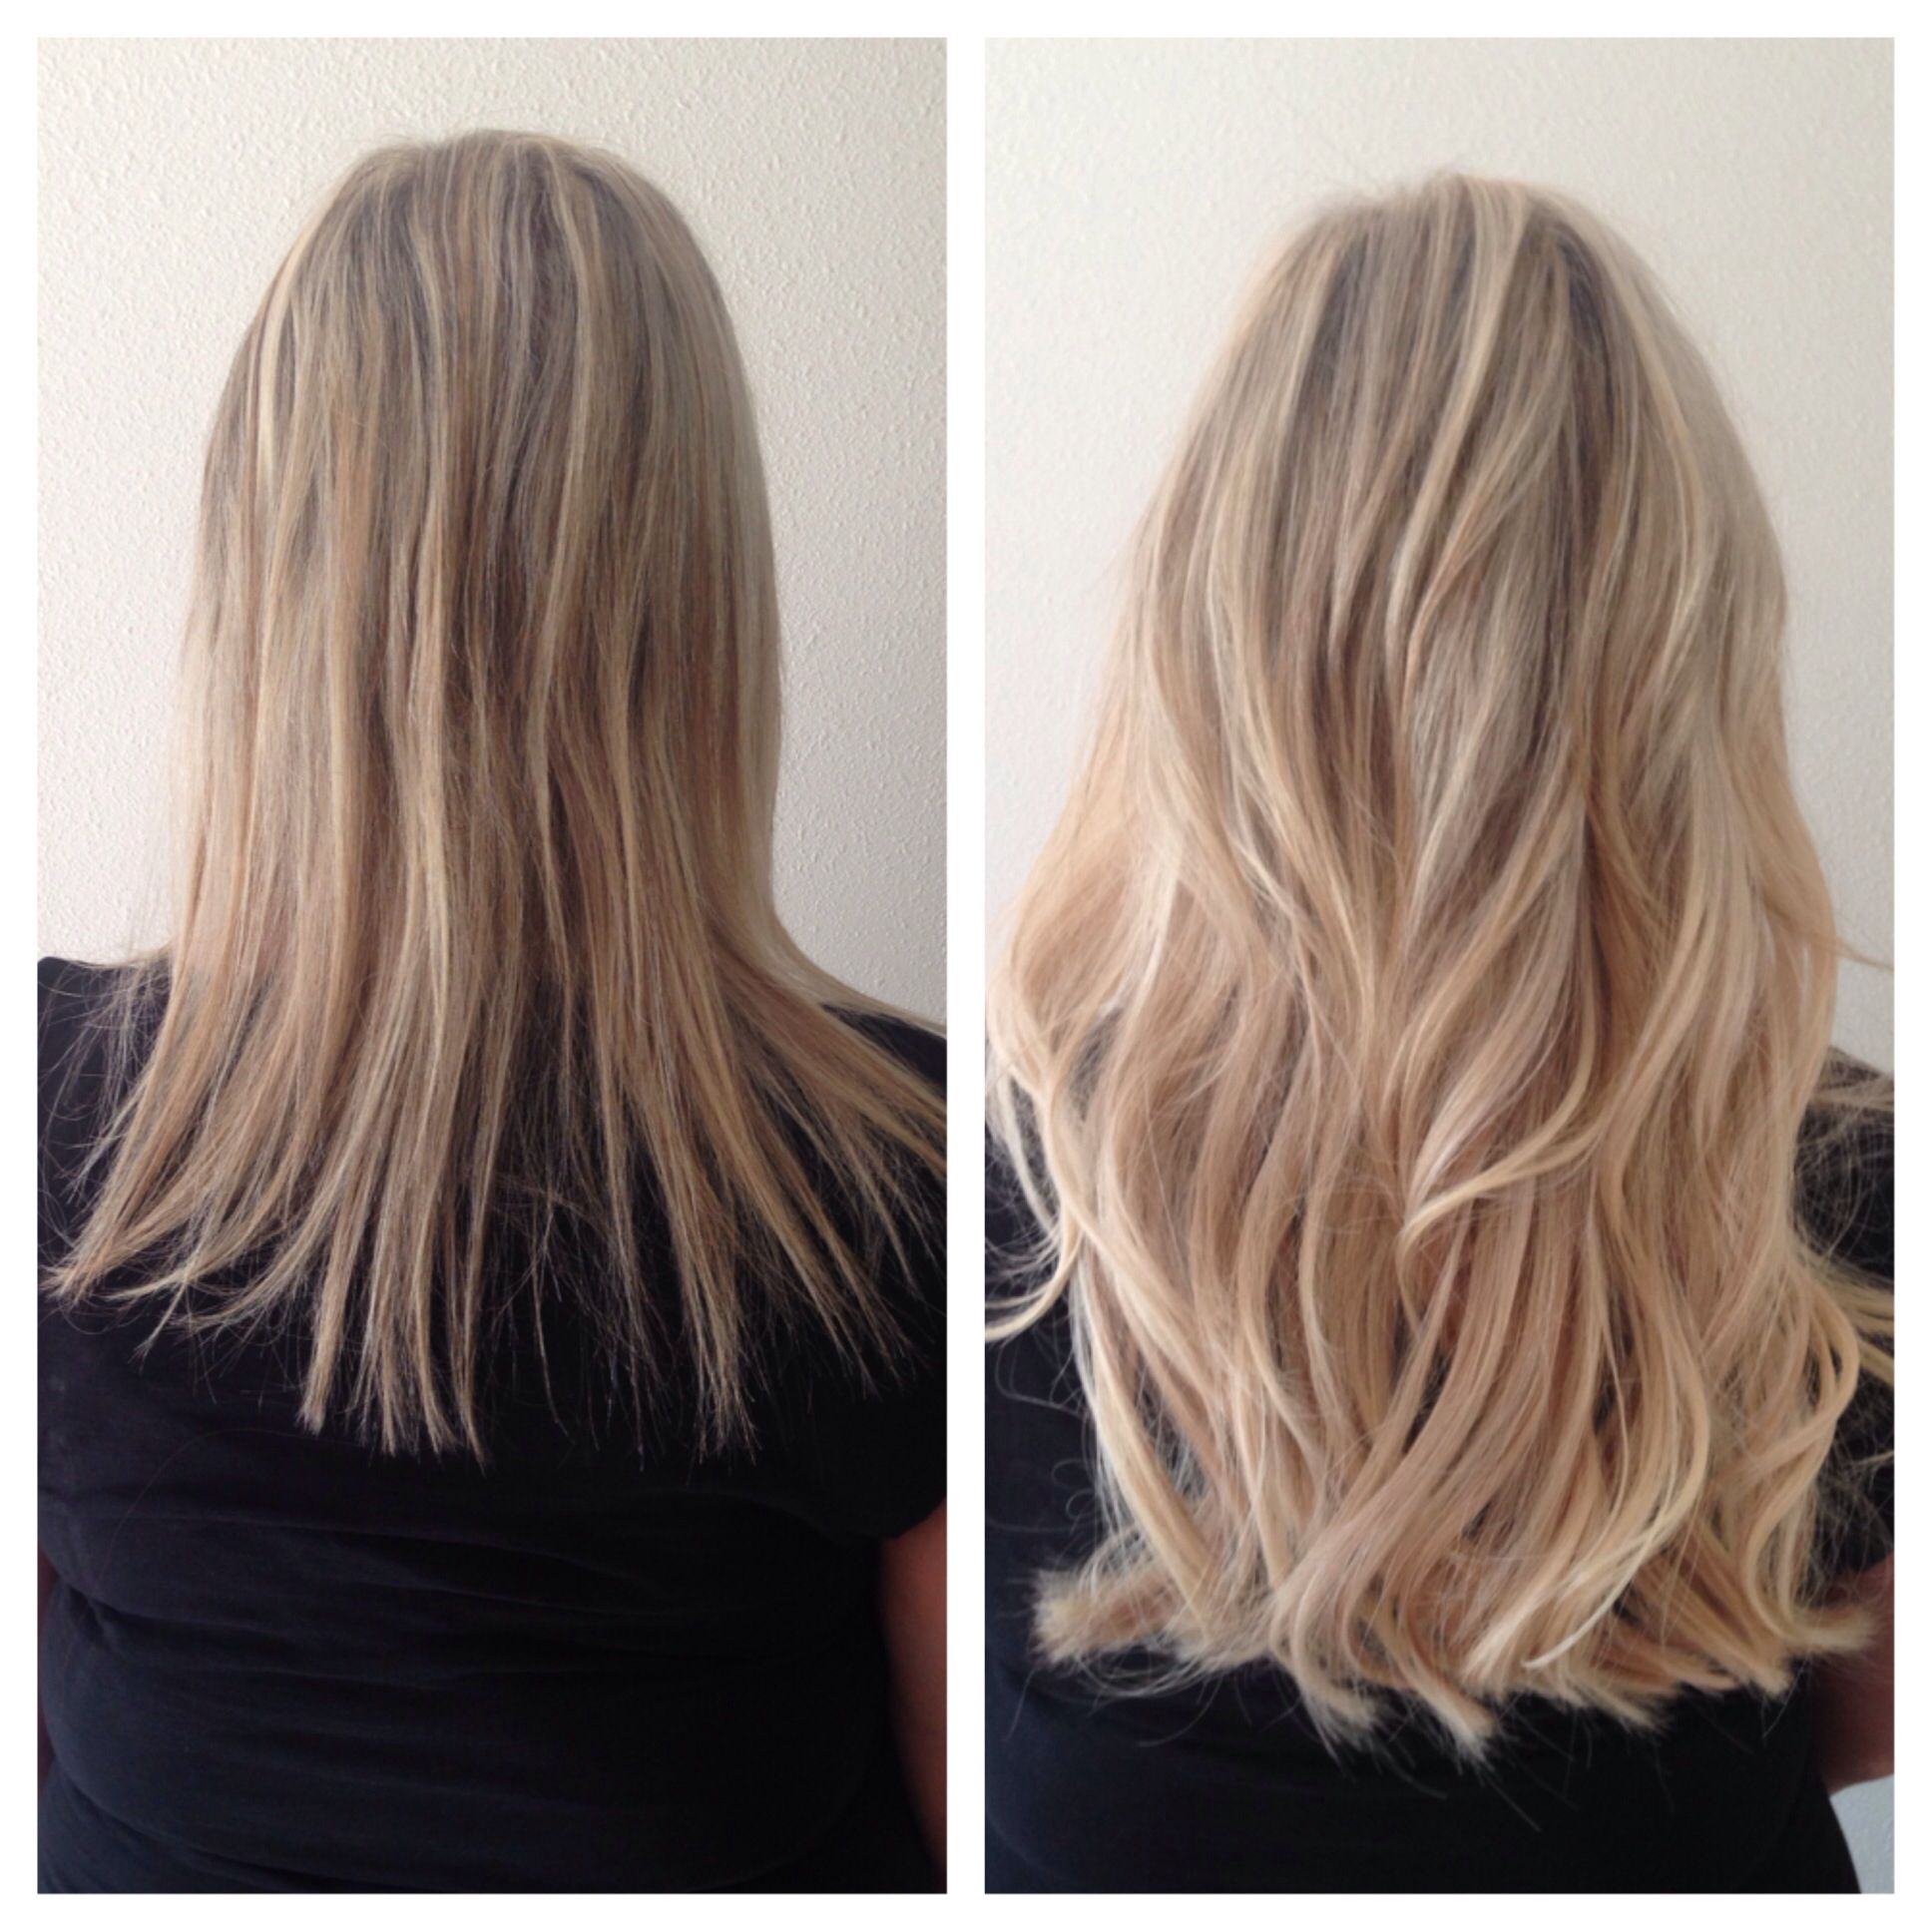 Gorgeous Blonde Volume Length Using Great Lengths Hair Extensions